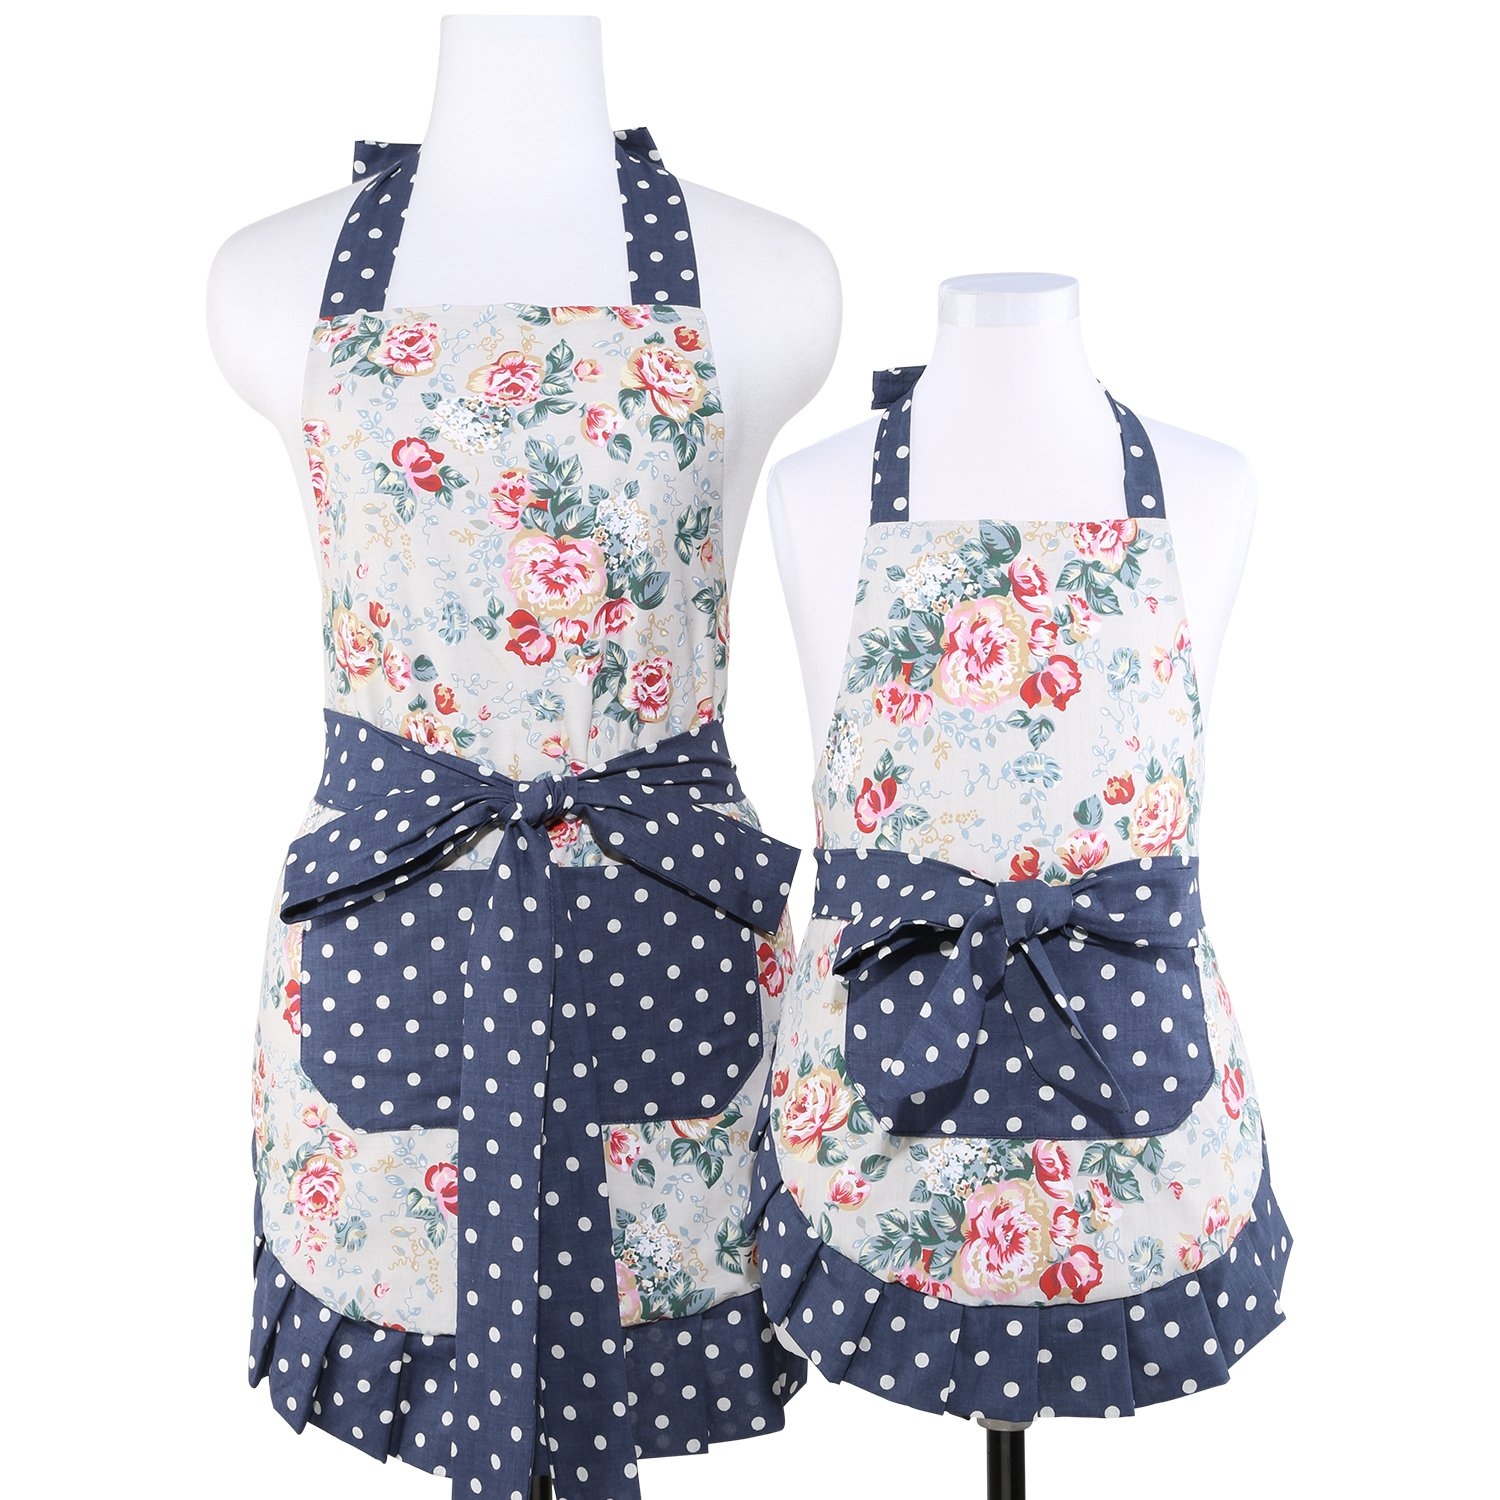 Neoviva Frilly Girl Apron Set for Mama and Me with Pocket, Lining Applied, Style Kathy, Floral Quarry Bloom